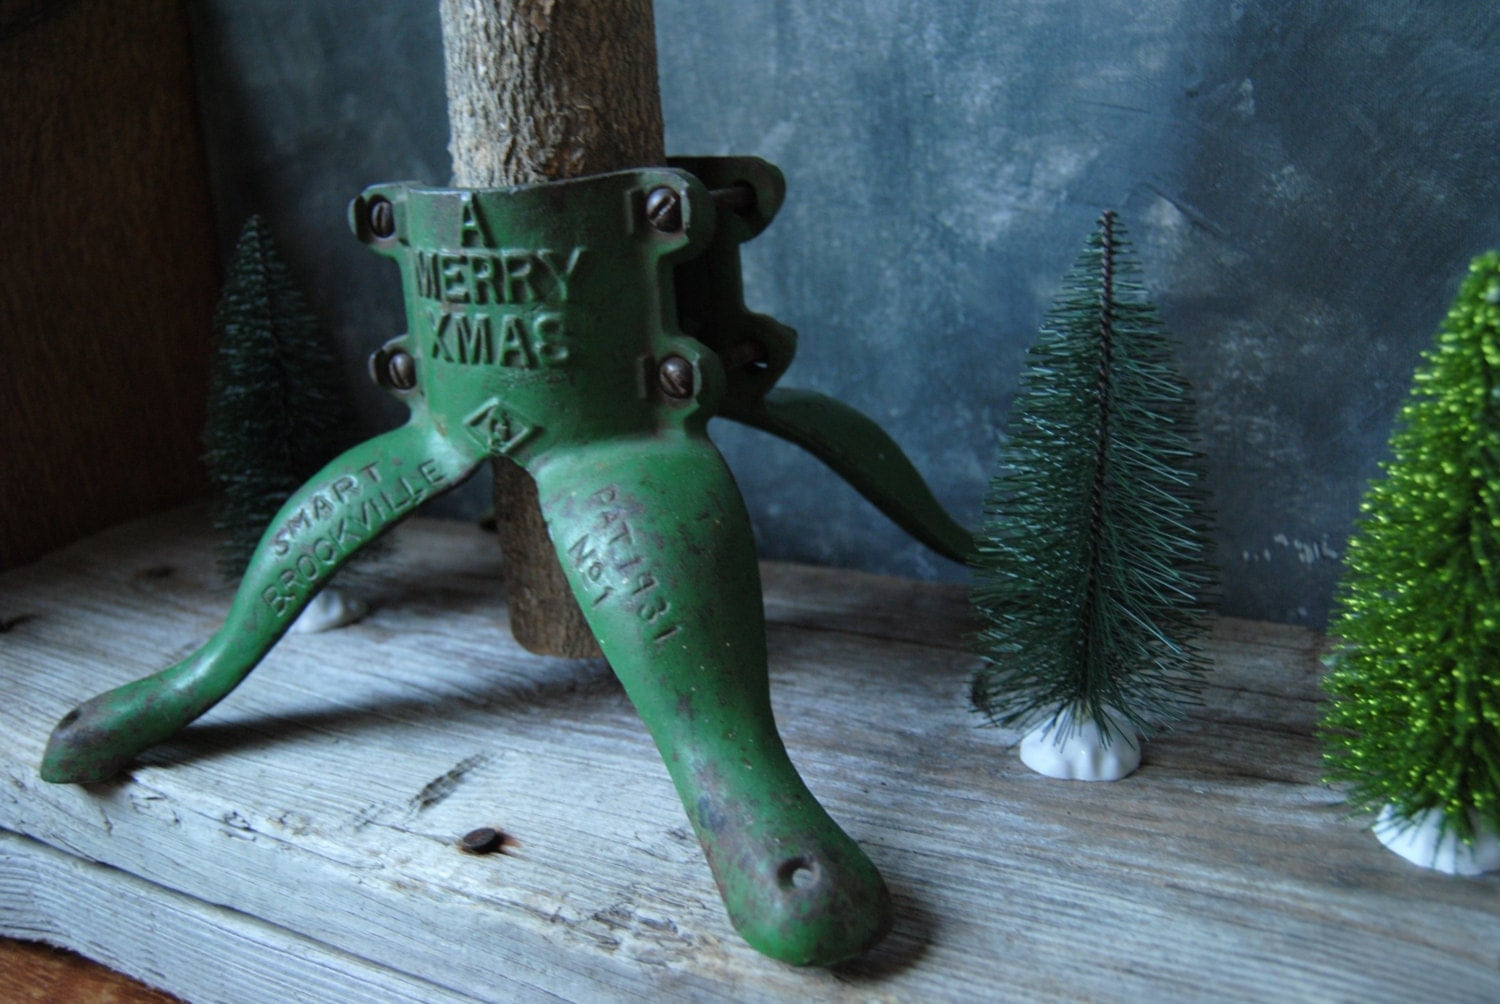 Antique Christmas Tree Stand Decorations : Antique cast iron christmas tree stand holiday